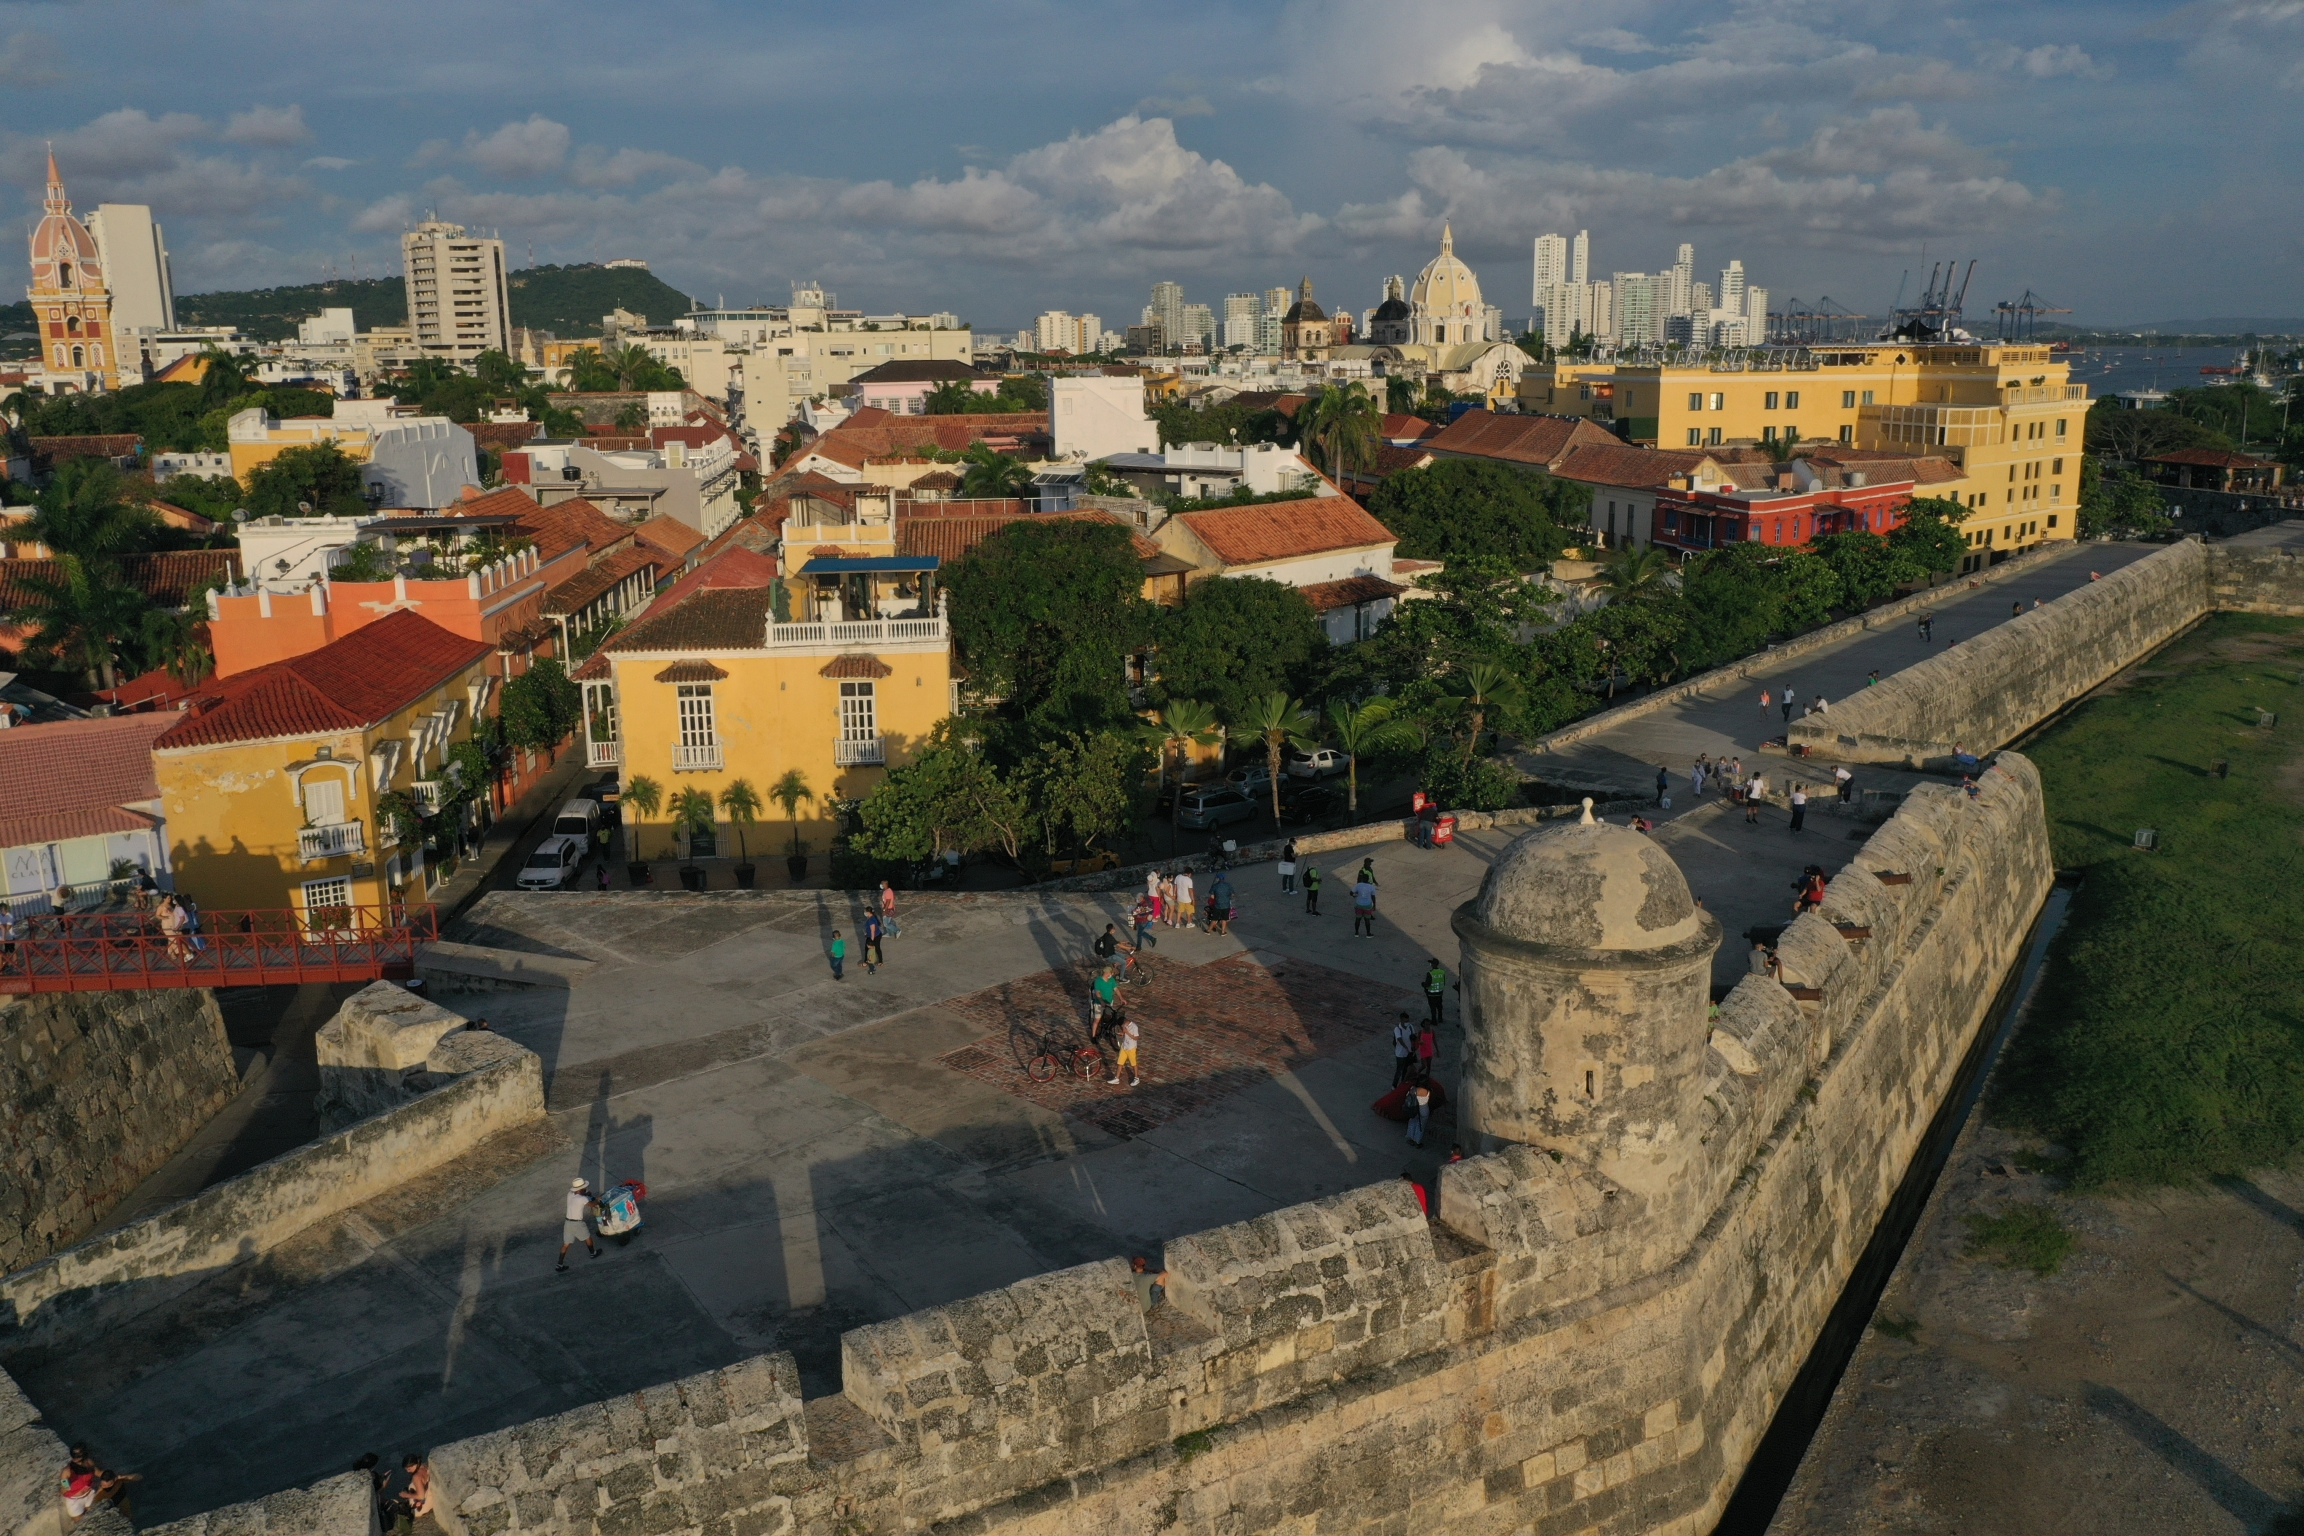 Cartagena's historical center is a UNESCO World Heritage site, and contains some of the best preserved examples of 18th century military architecture in the Caribbean